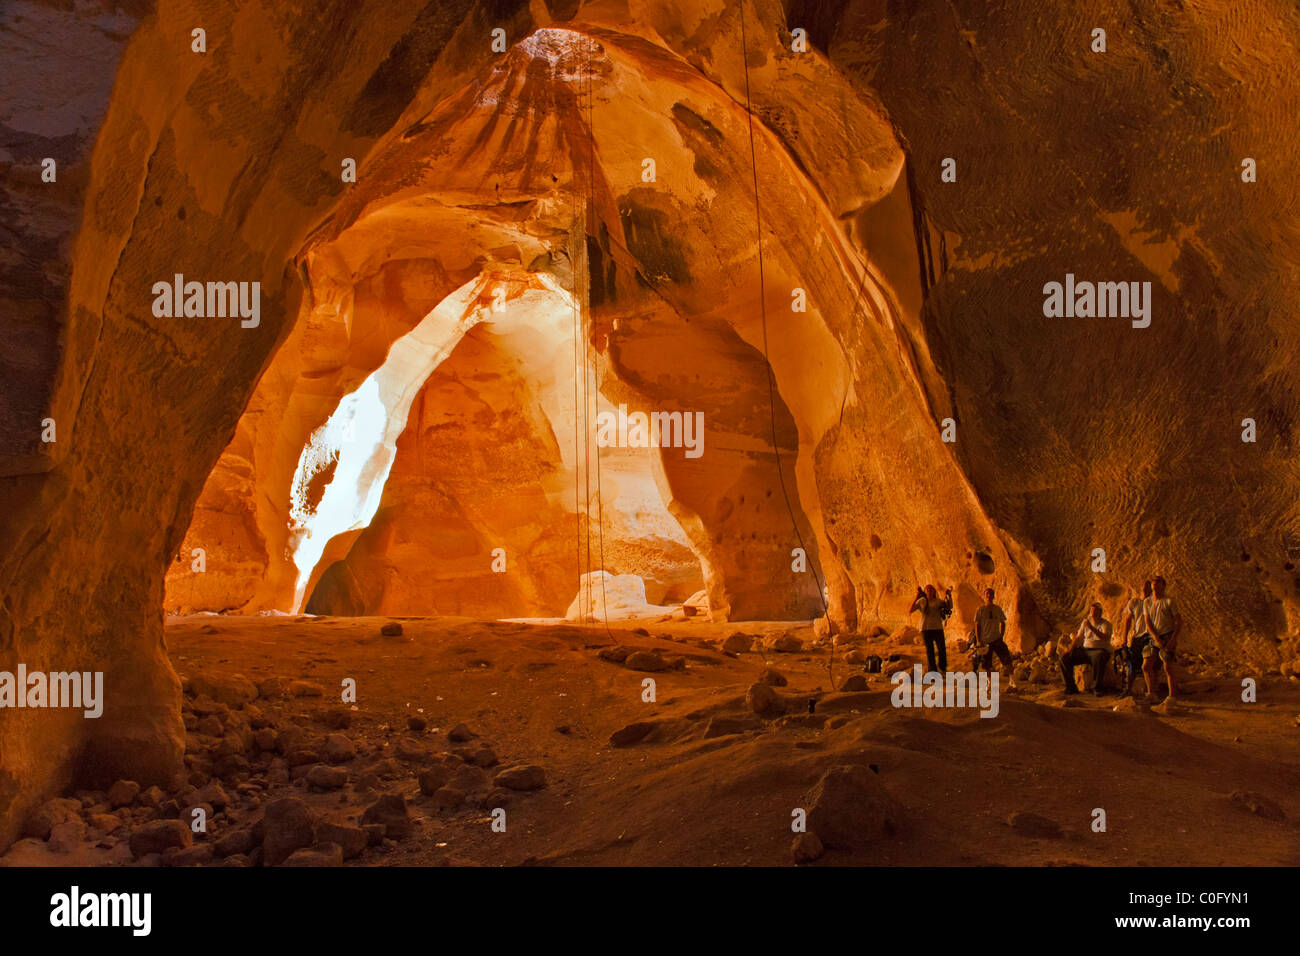 People wait for a group member to rappel from the top of the Bell caves near Luzit, Israel. - Stock Image